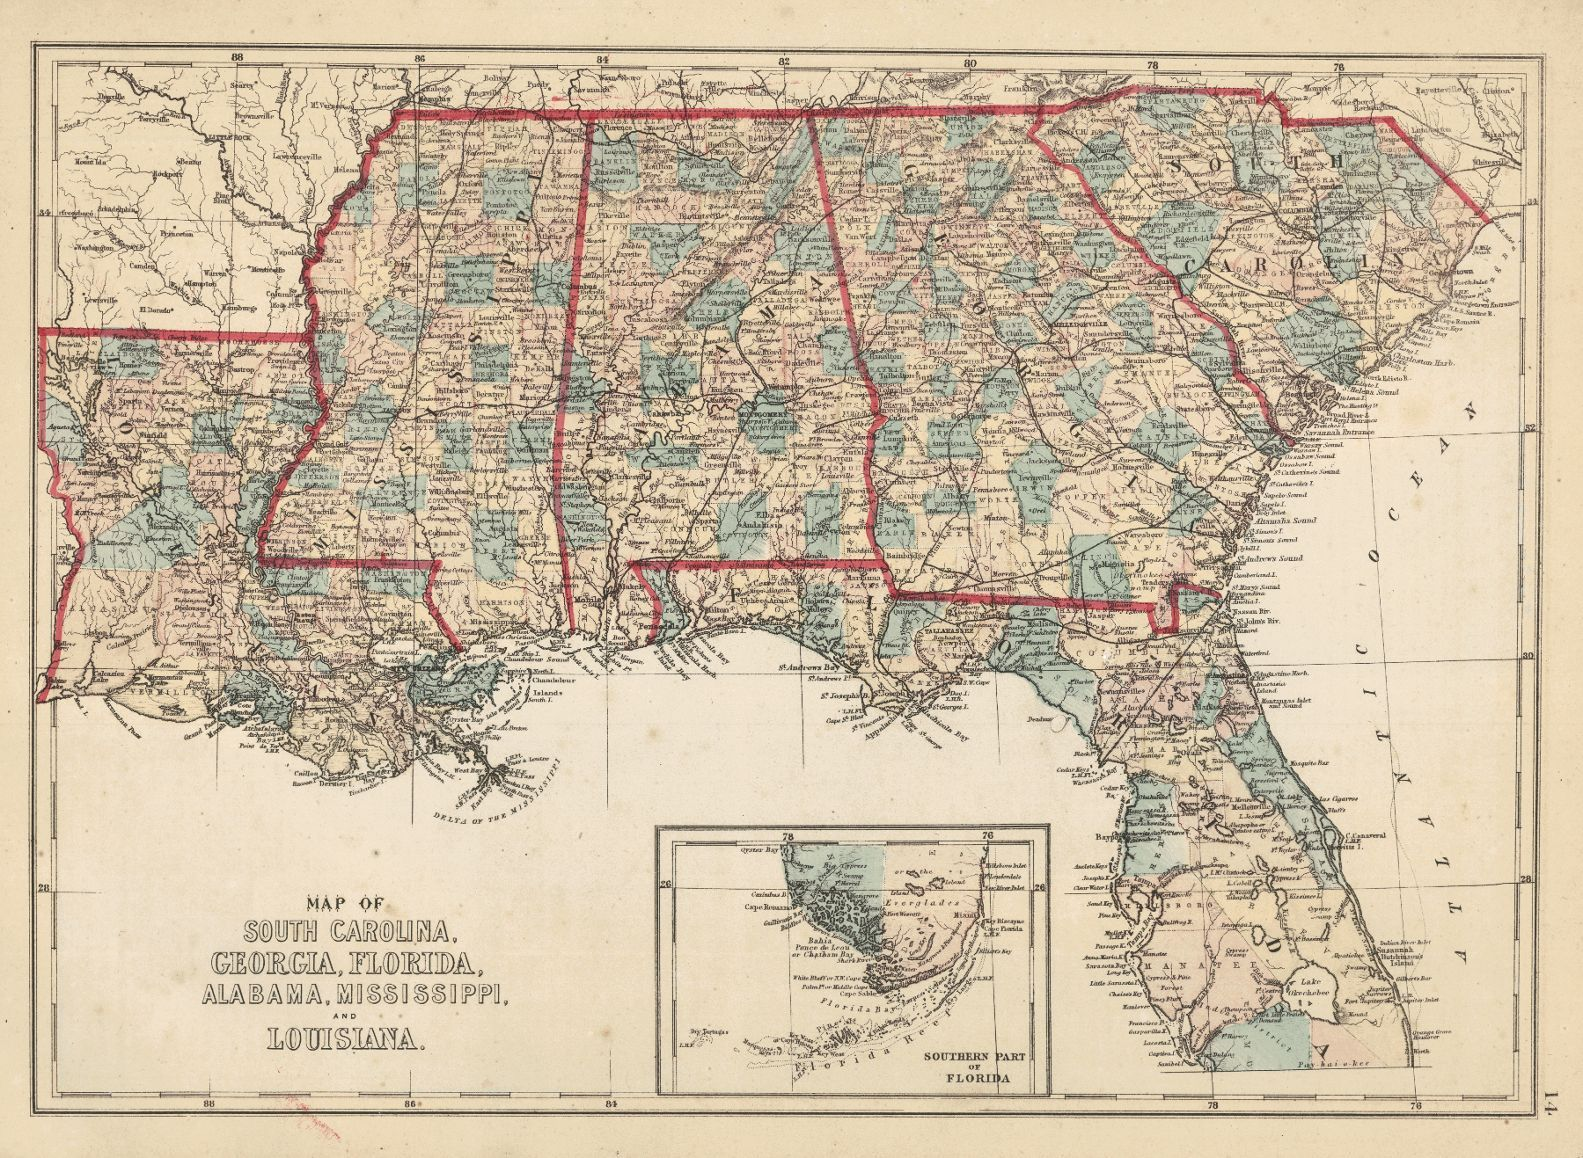 Map Of Georgia Florida And Alabama.Map Of South Carolina Georgia Florida Alabama Mississippi And